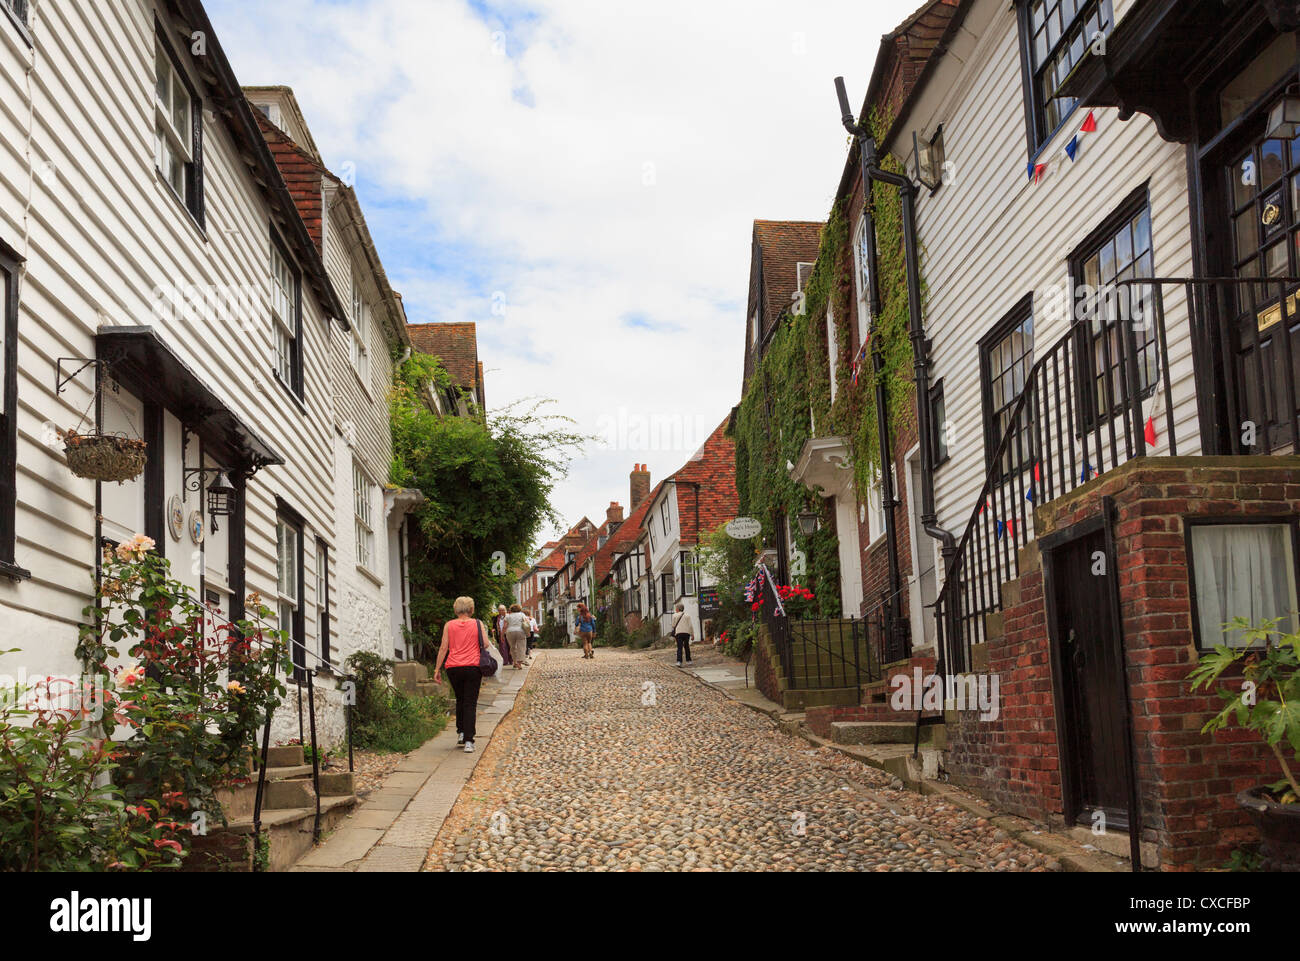 View up the famous narrow cobbled street lined with quaint old houses in Mermaid Street, Rye, East Sussex, England, - Stock Image